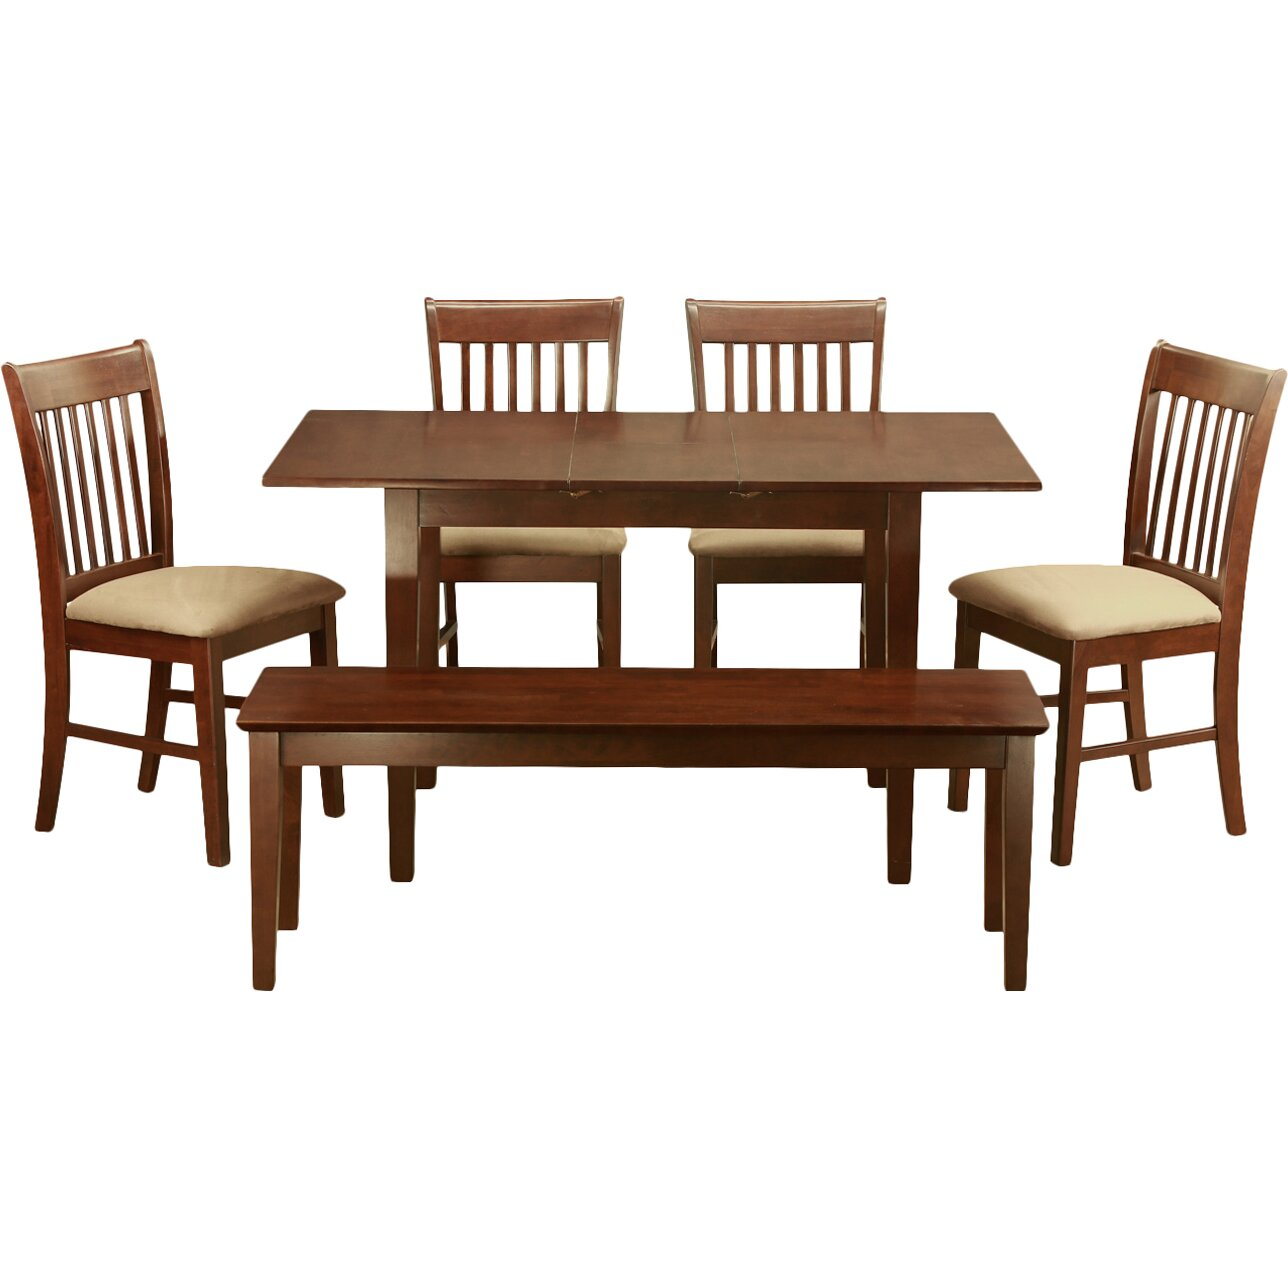 East West Norfolk 6 Piece Dining Set & Reviews